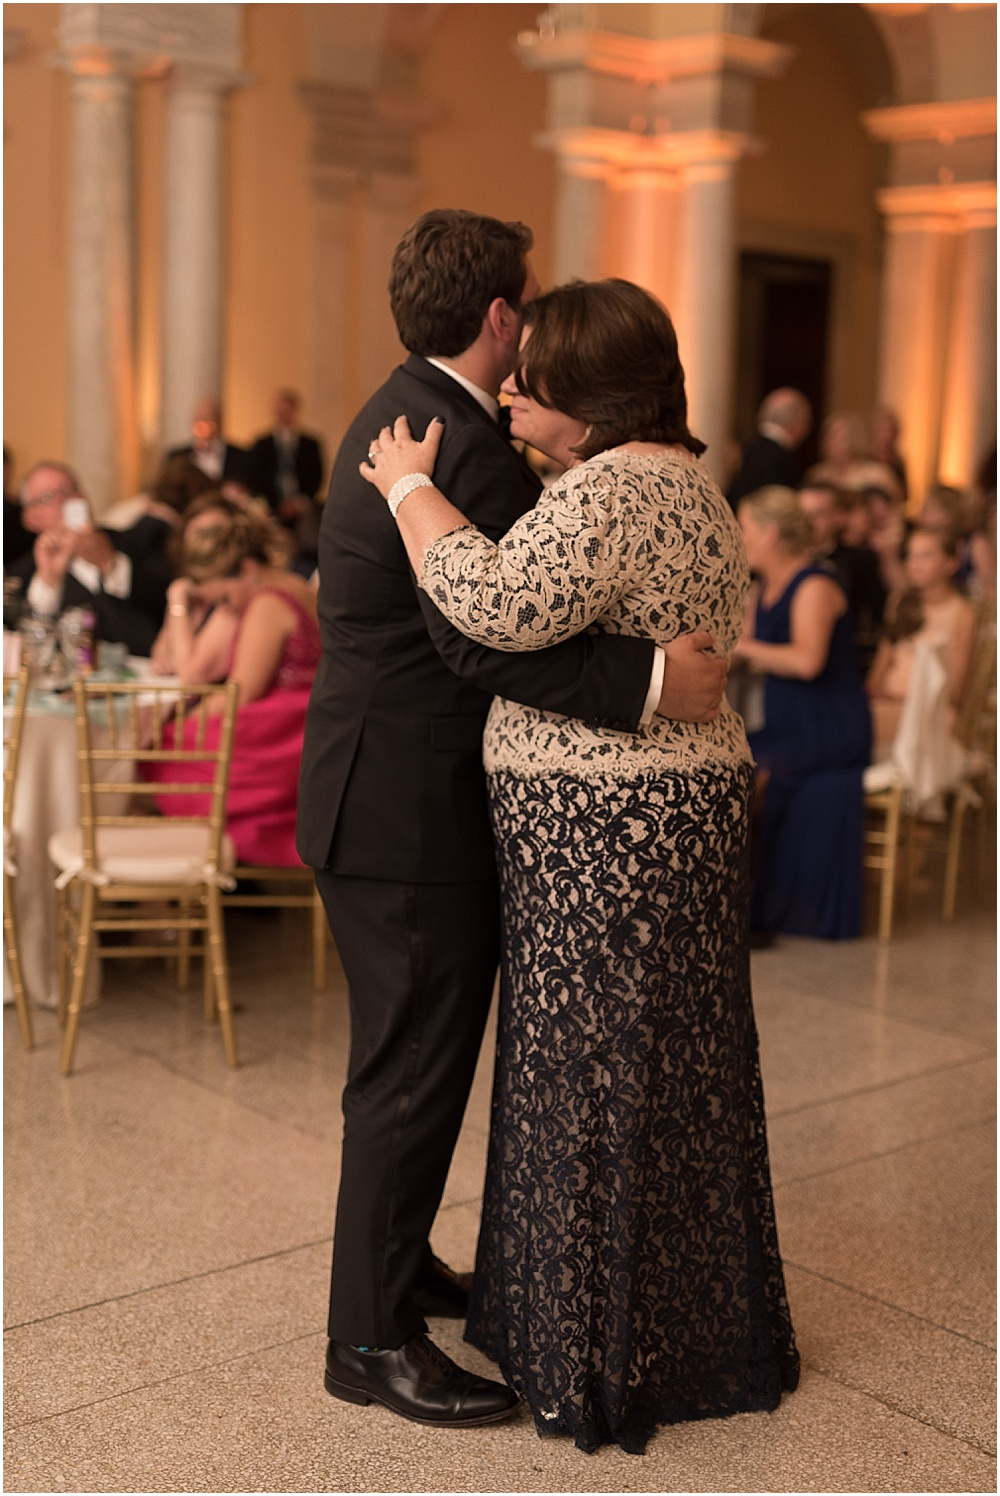 The_Walters_Art_Gallery_Baltimore_Wedding_Photographer_0143